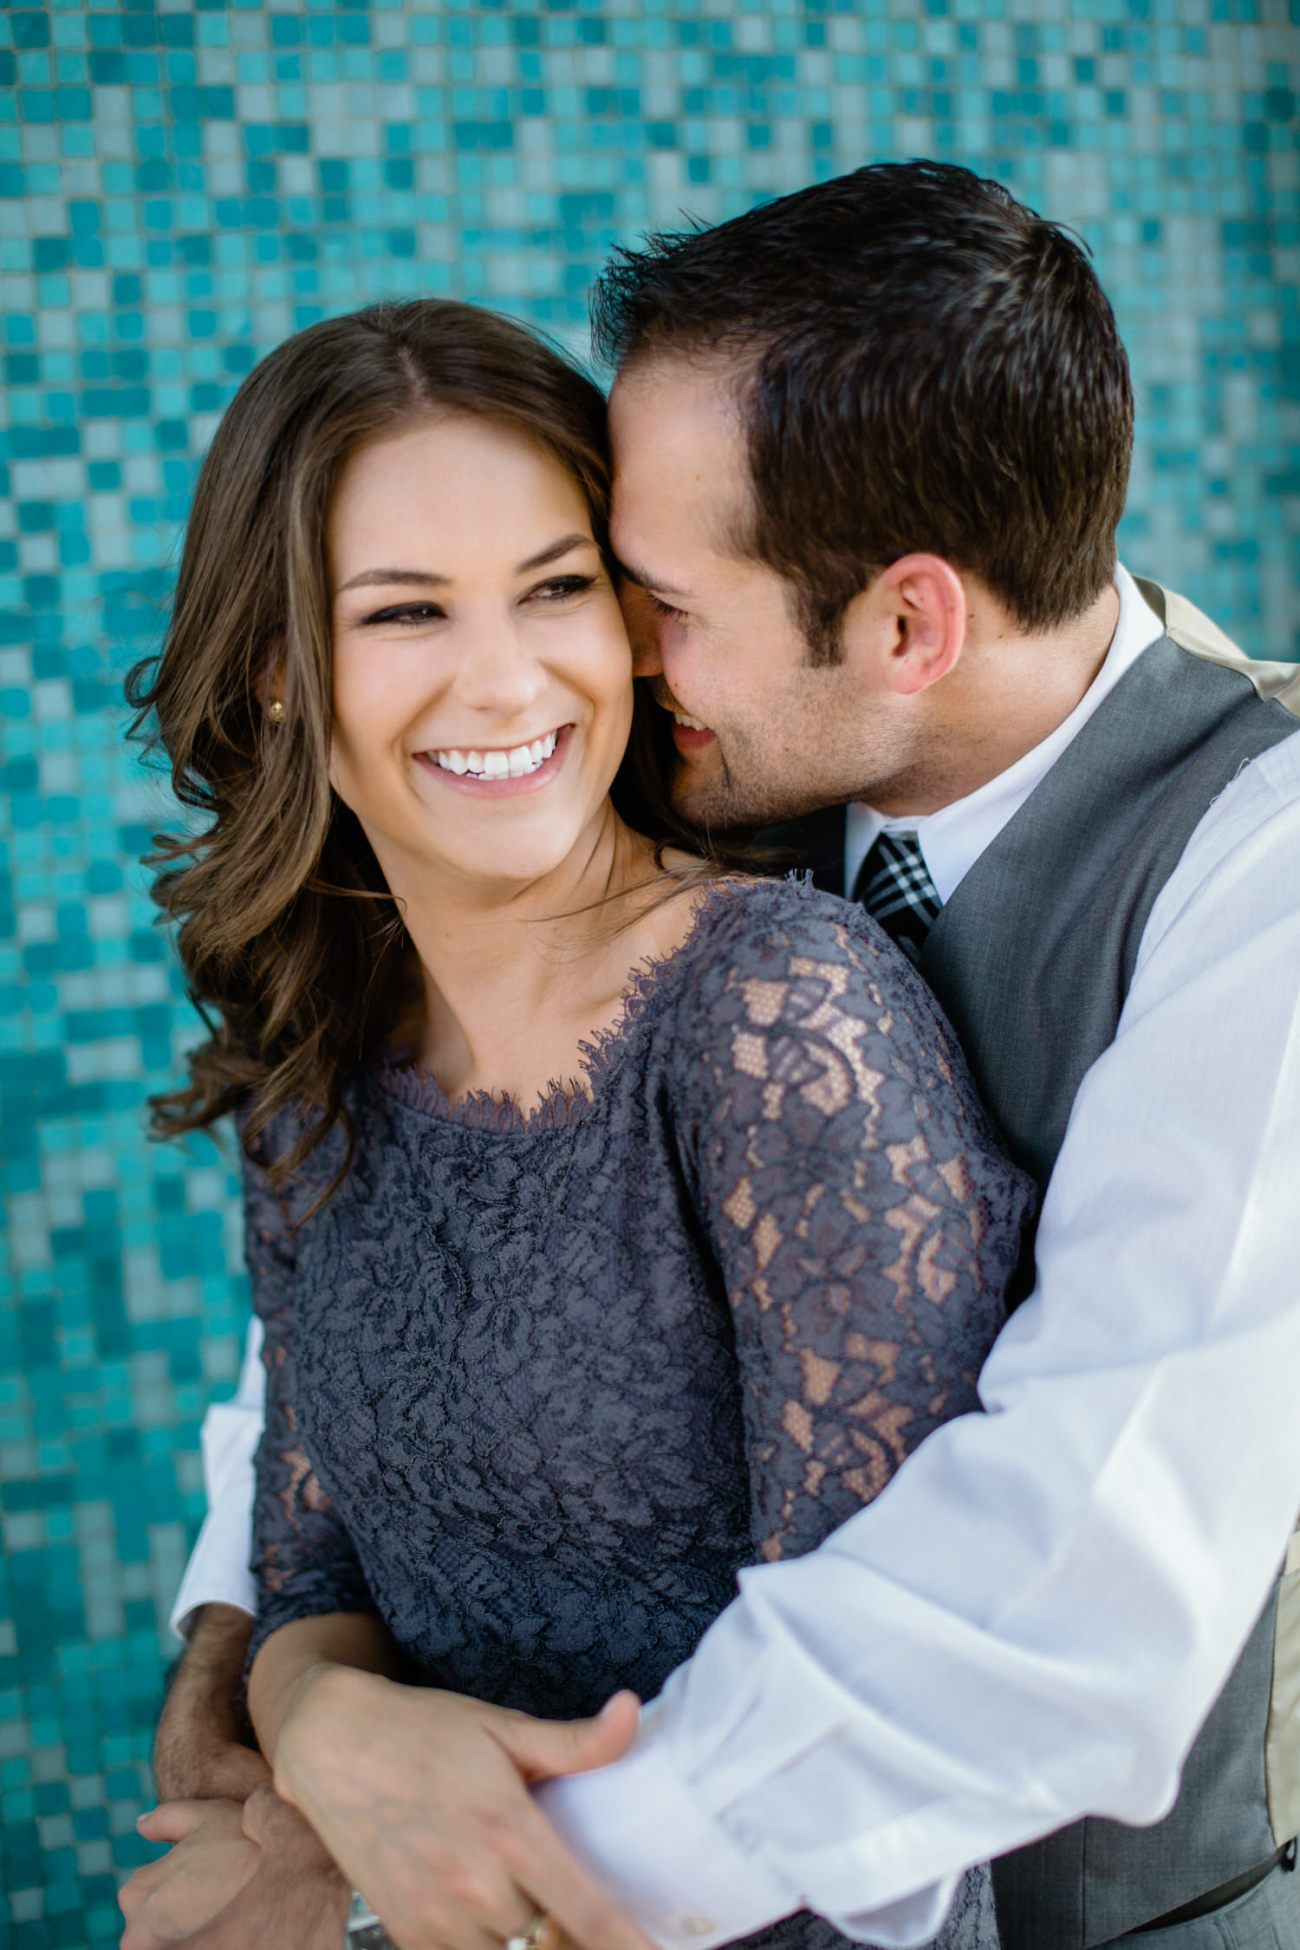 downtown lubbock engagement session